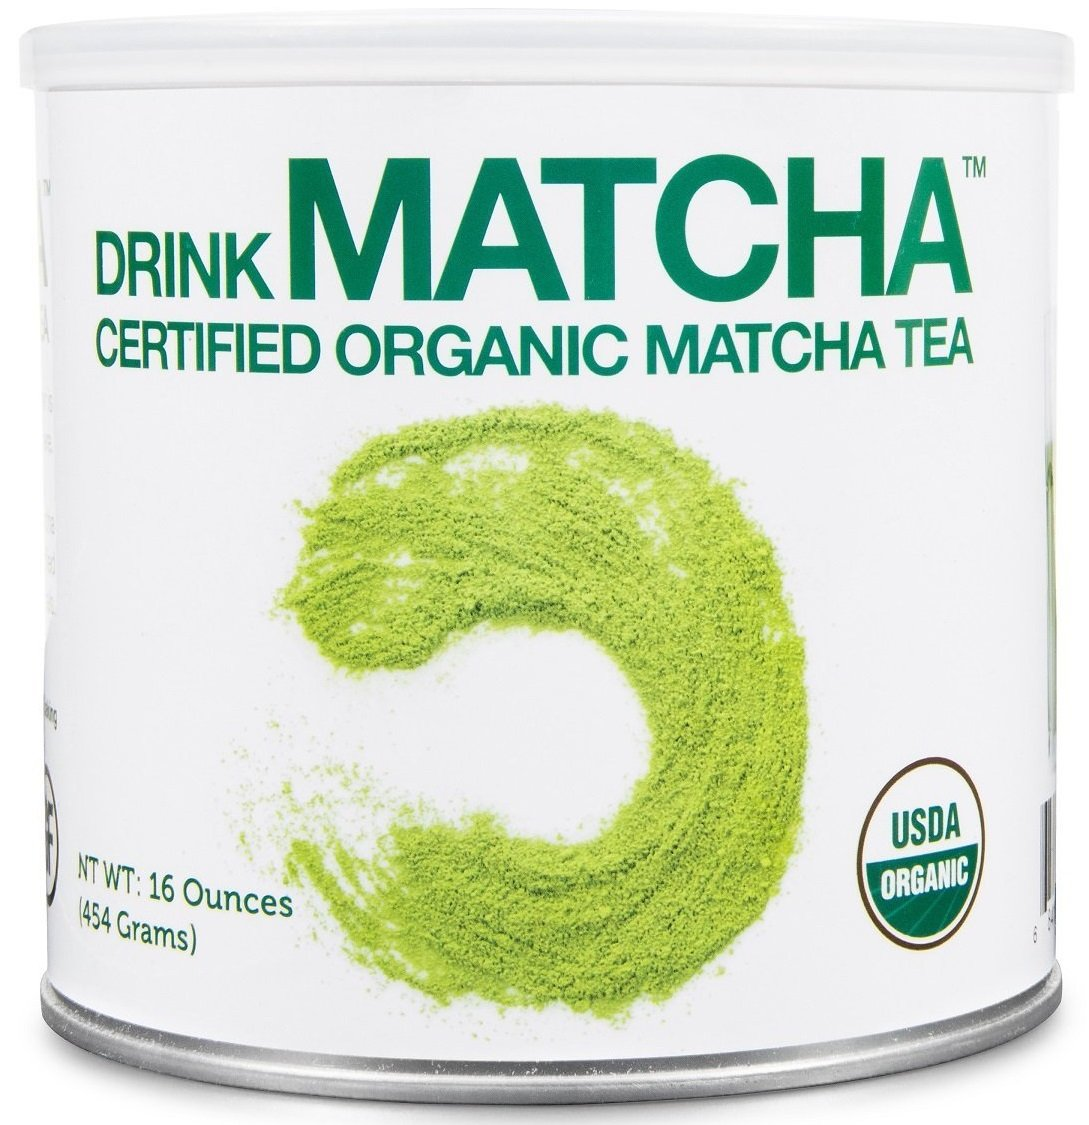 DrinkMatcha - Matcha Green Tea Powder - USDA Organic - 100% Pure Matcha Green tea Powder - Nothing added (16 Ounce) by DRINK MATCHA